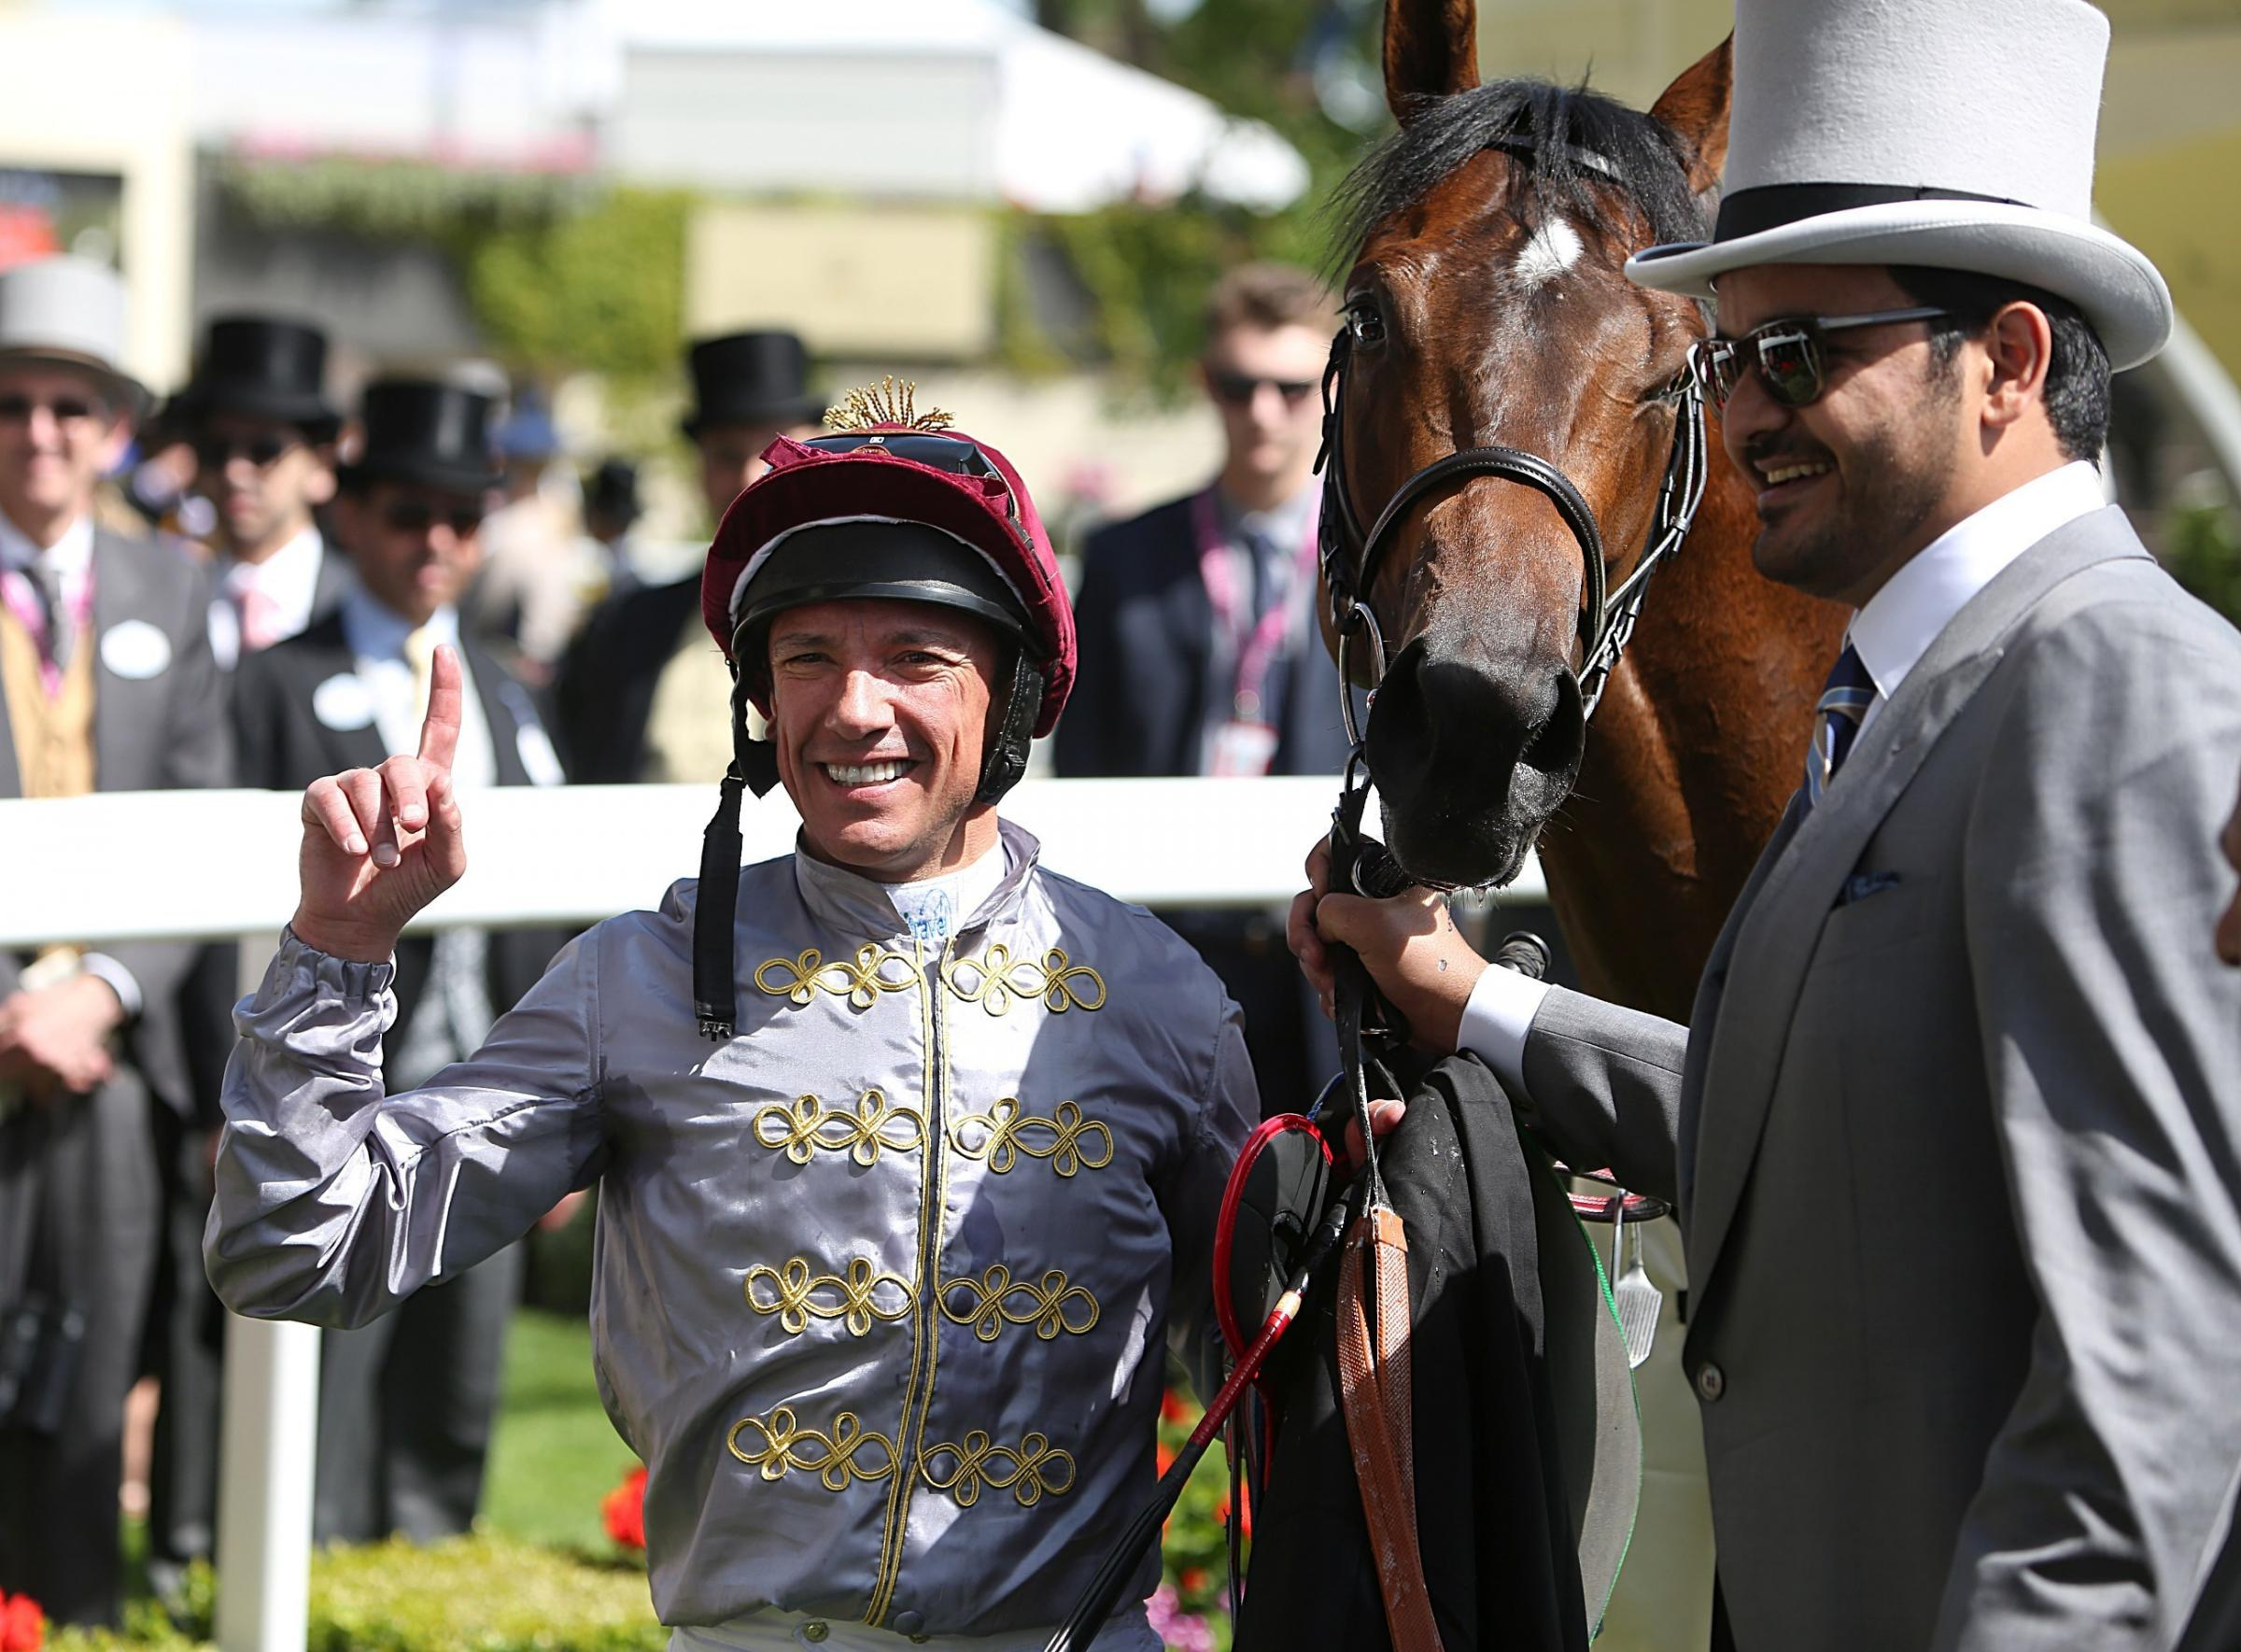 Frankie Dettori celebrates in the winners enclosure after winning the Coventry Stakes on The Wow Signal